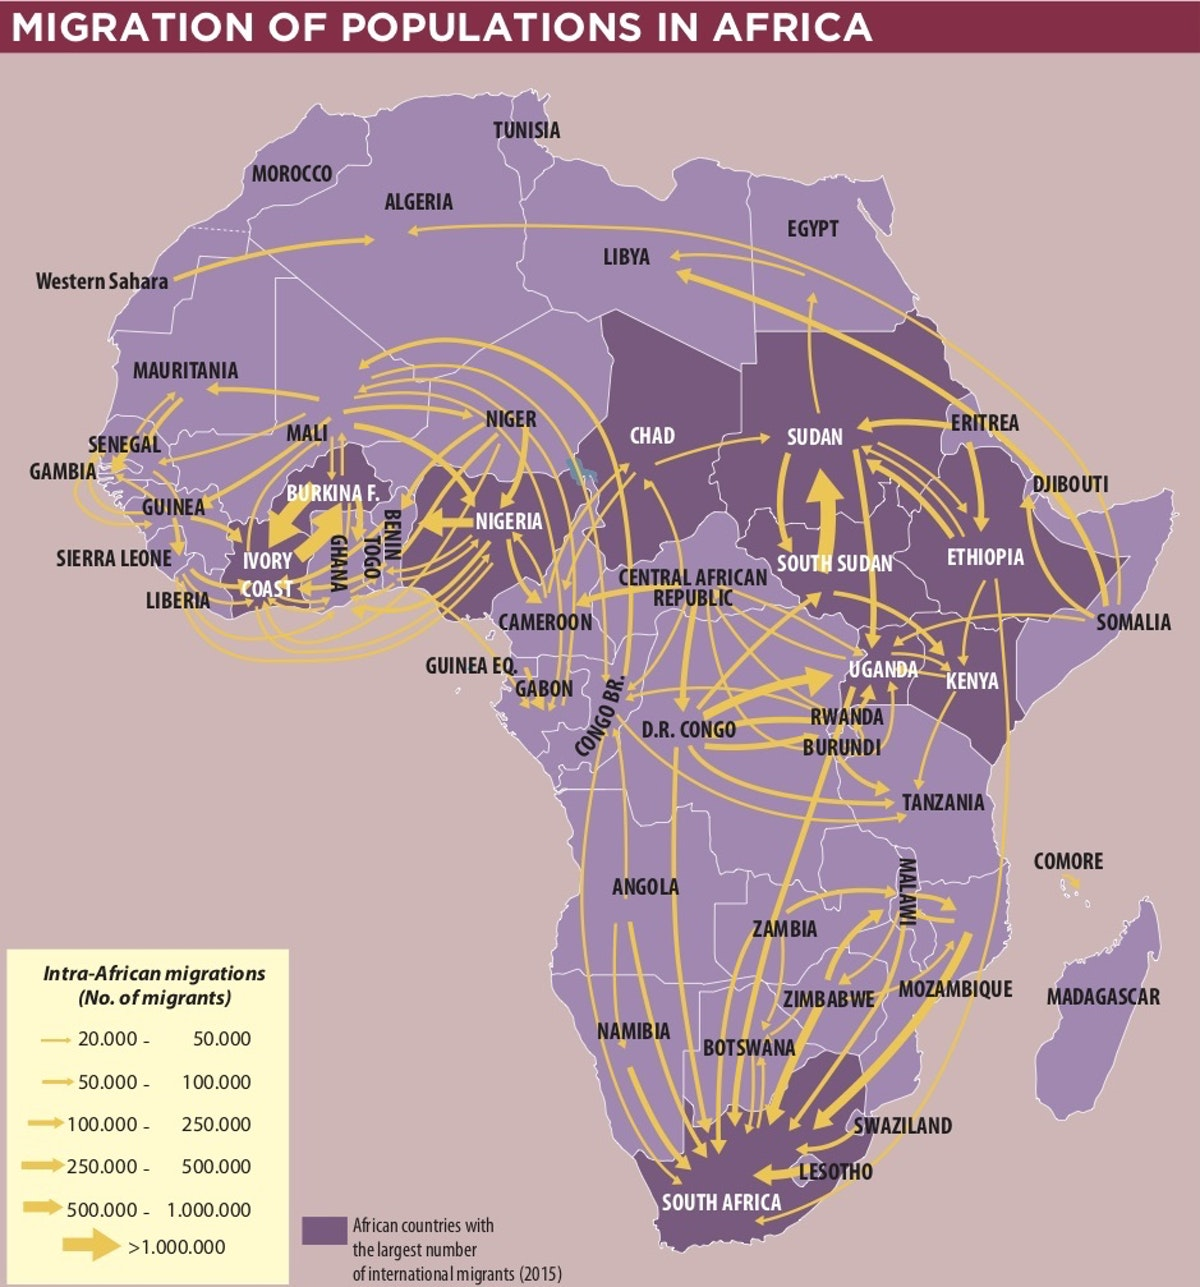 Migration of population in Africa